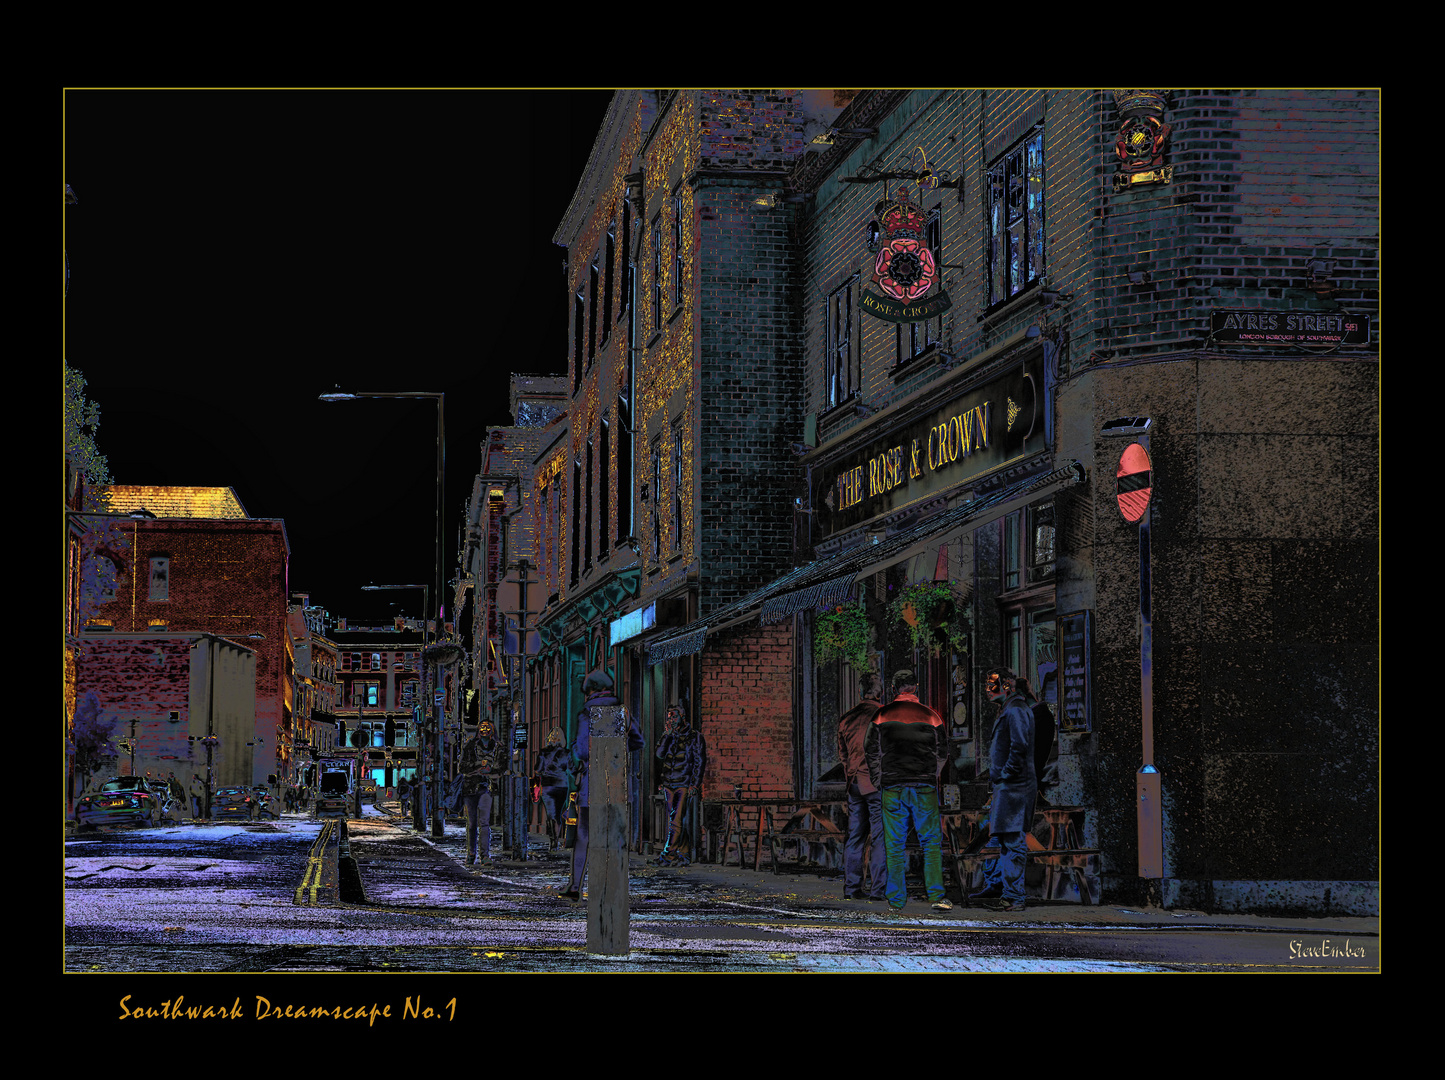 Southwark Dreamscape No.1 - The Rose & Crown